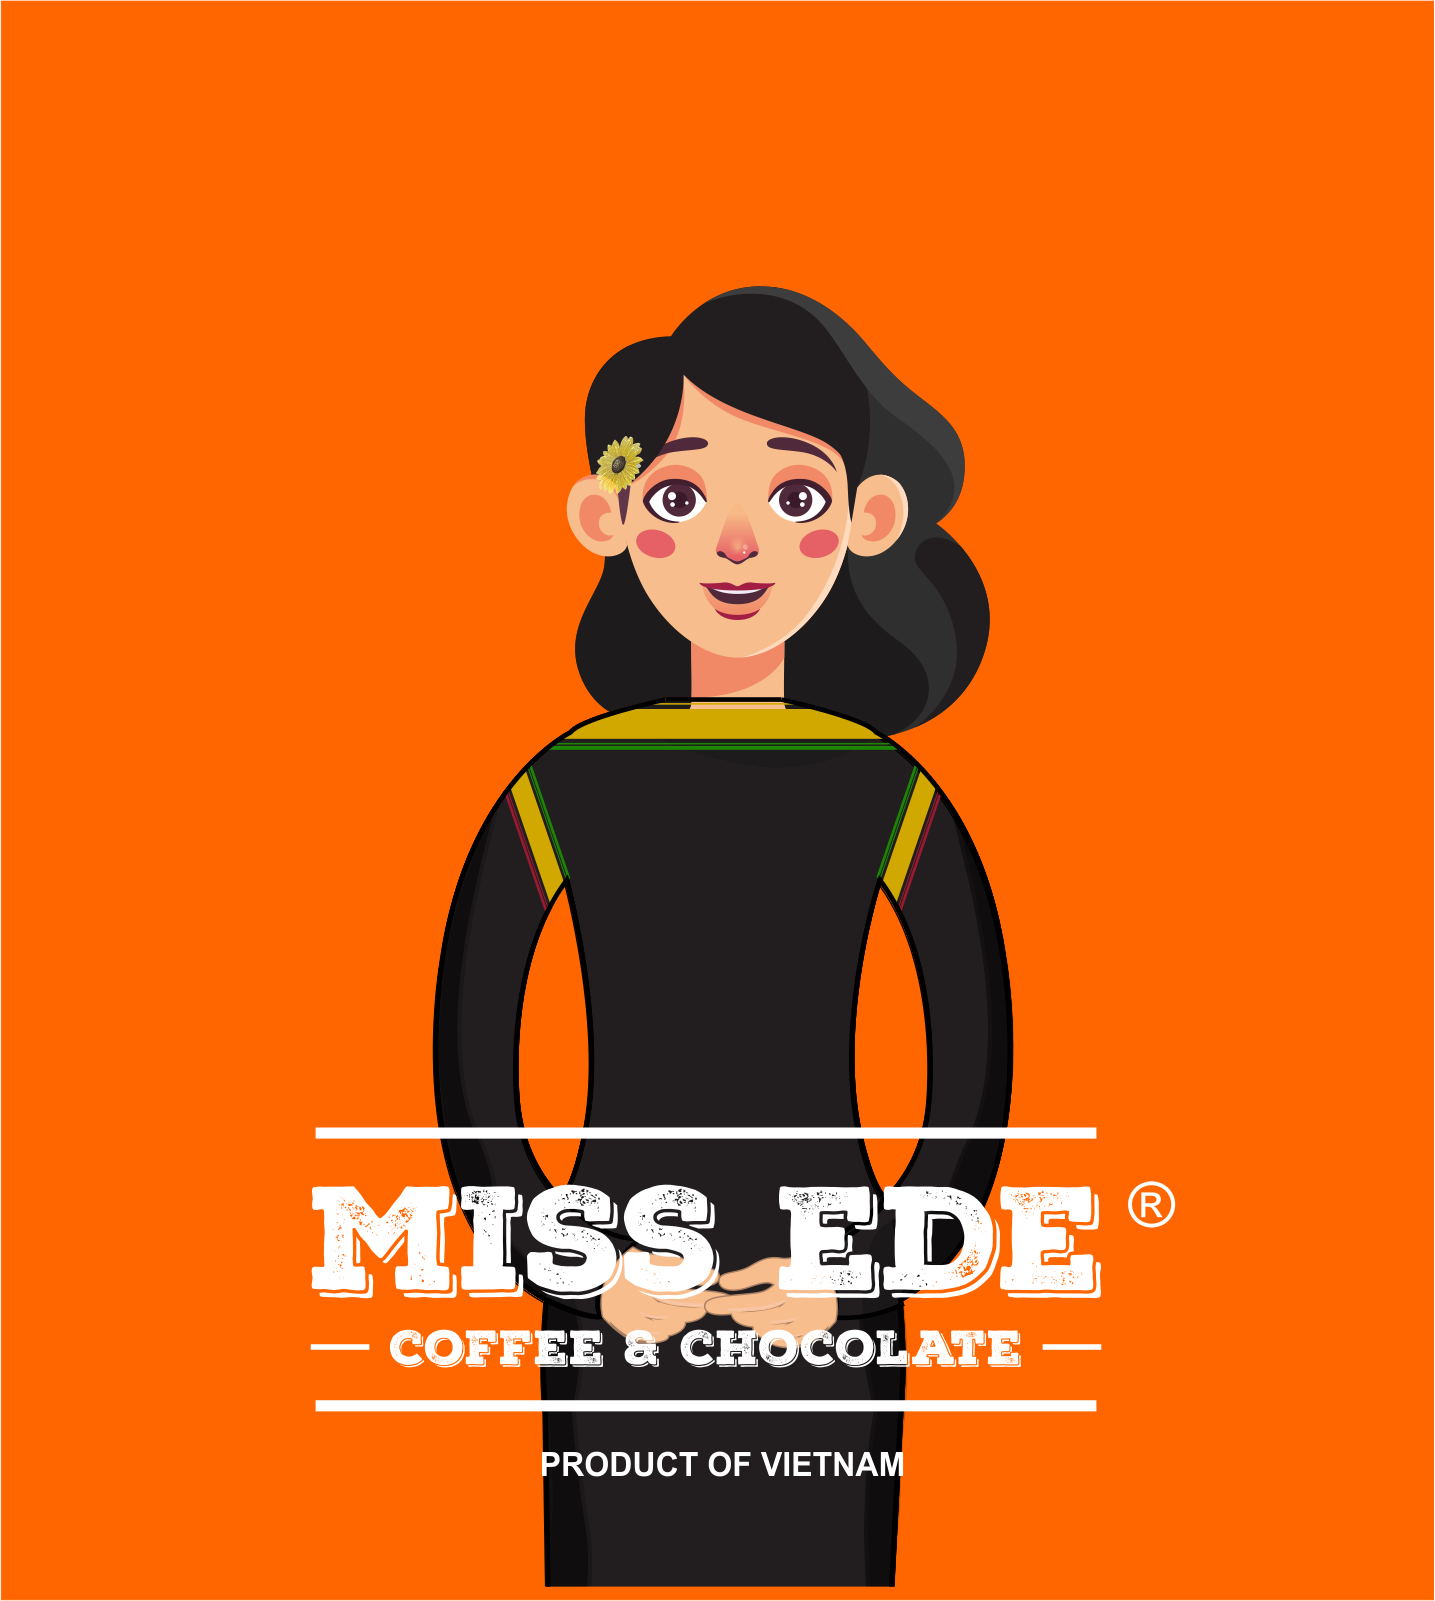 MISS EDE